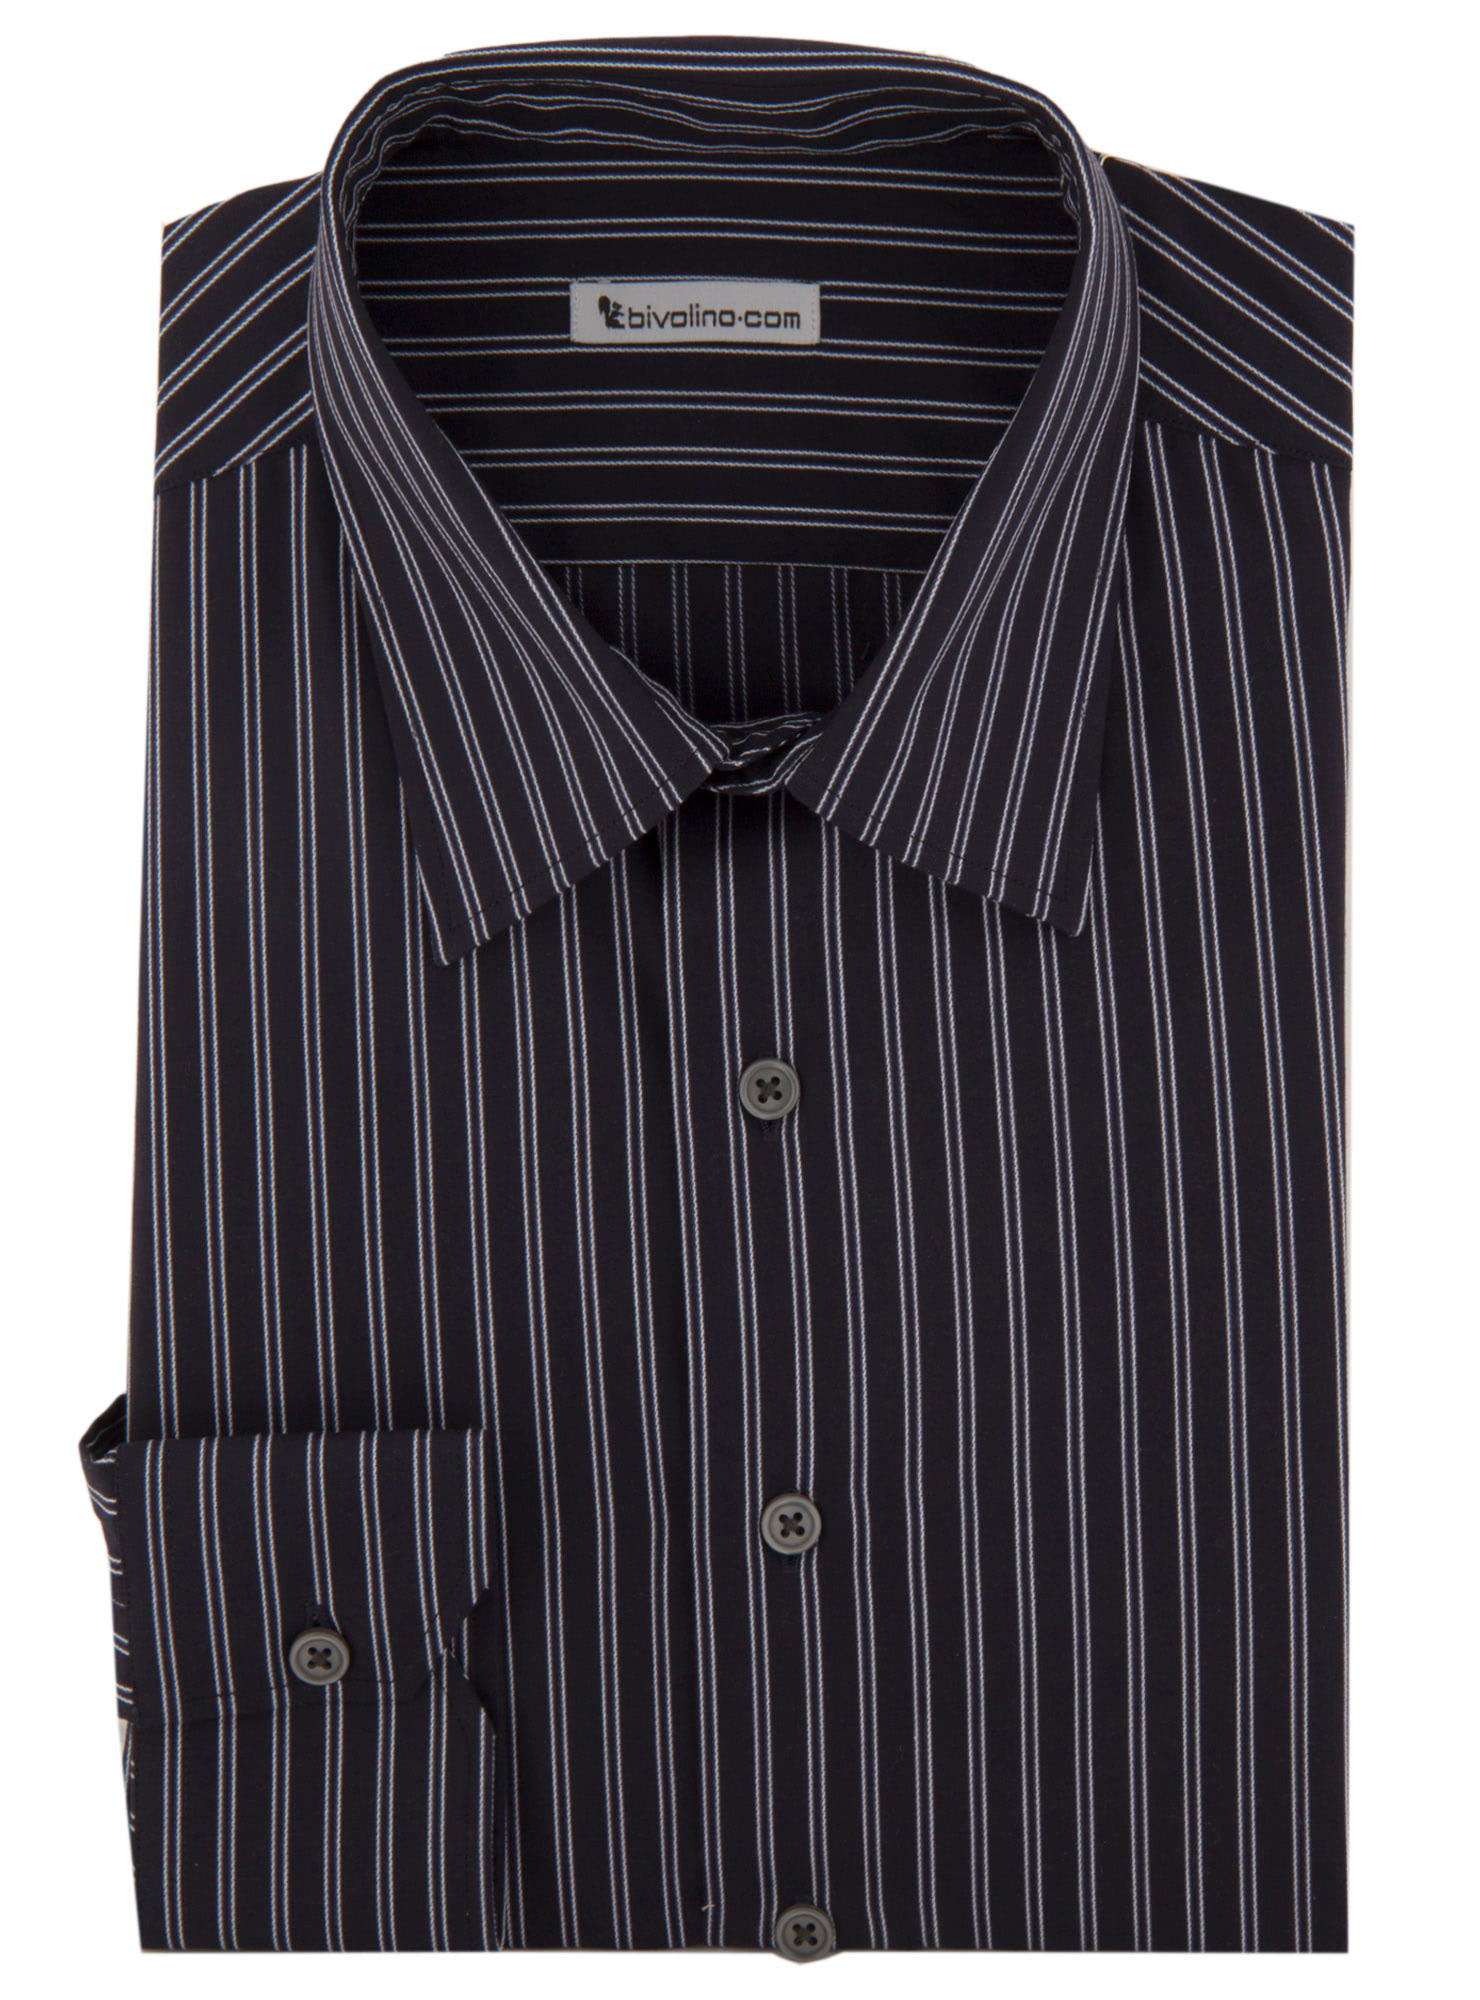 Fiesolito - Black striped popline shirt - Cifra 5